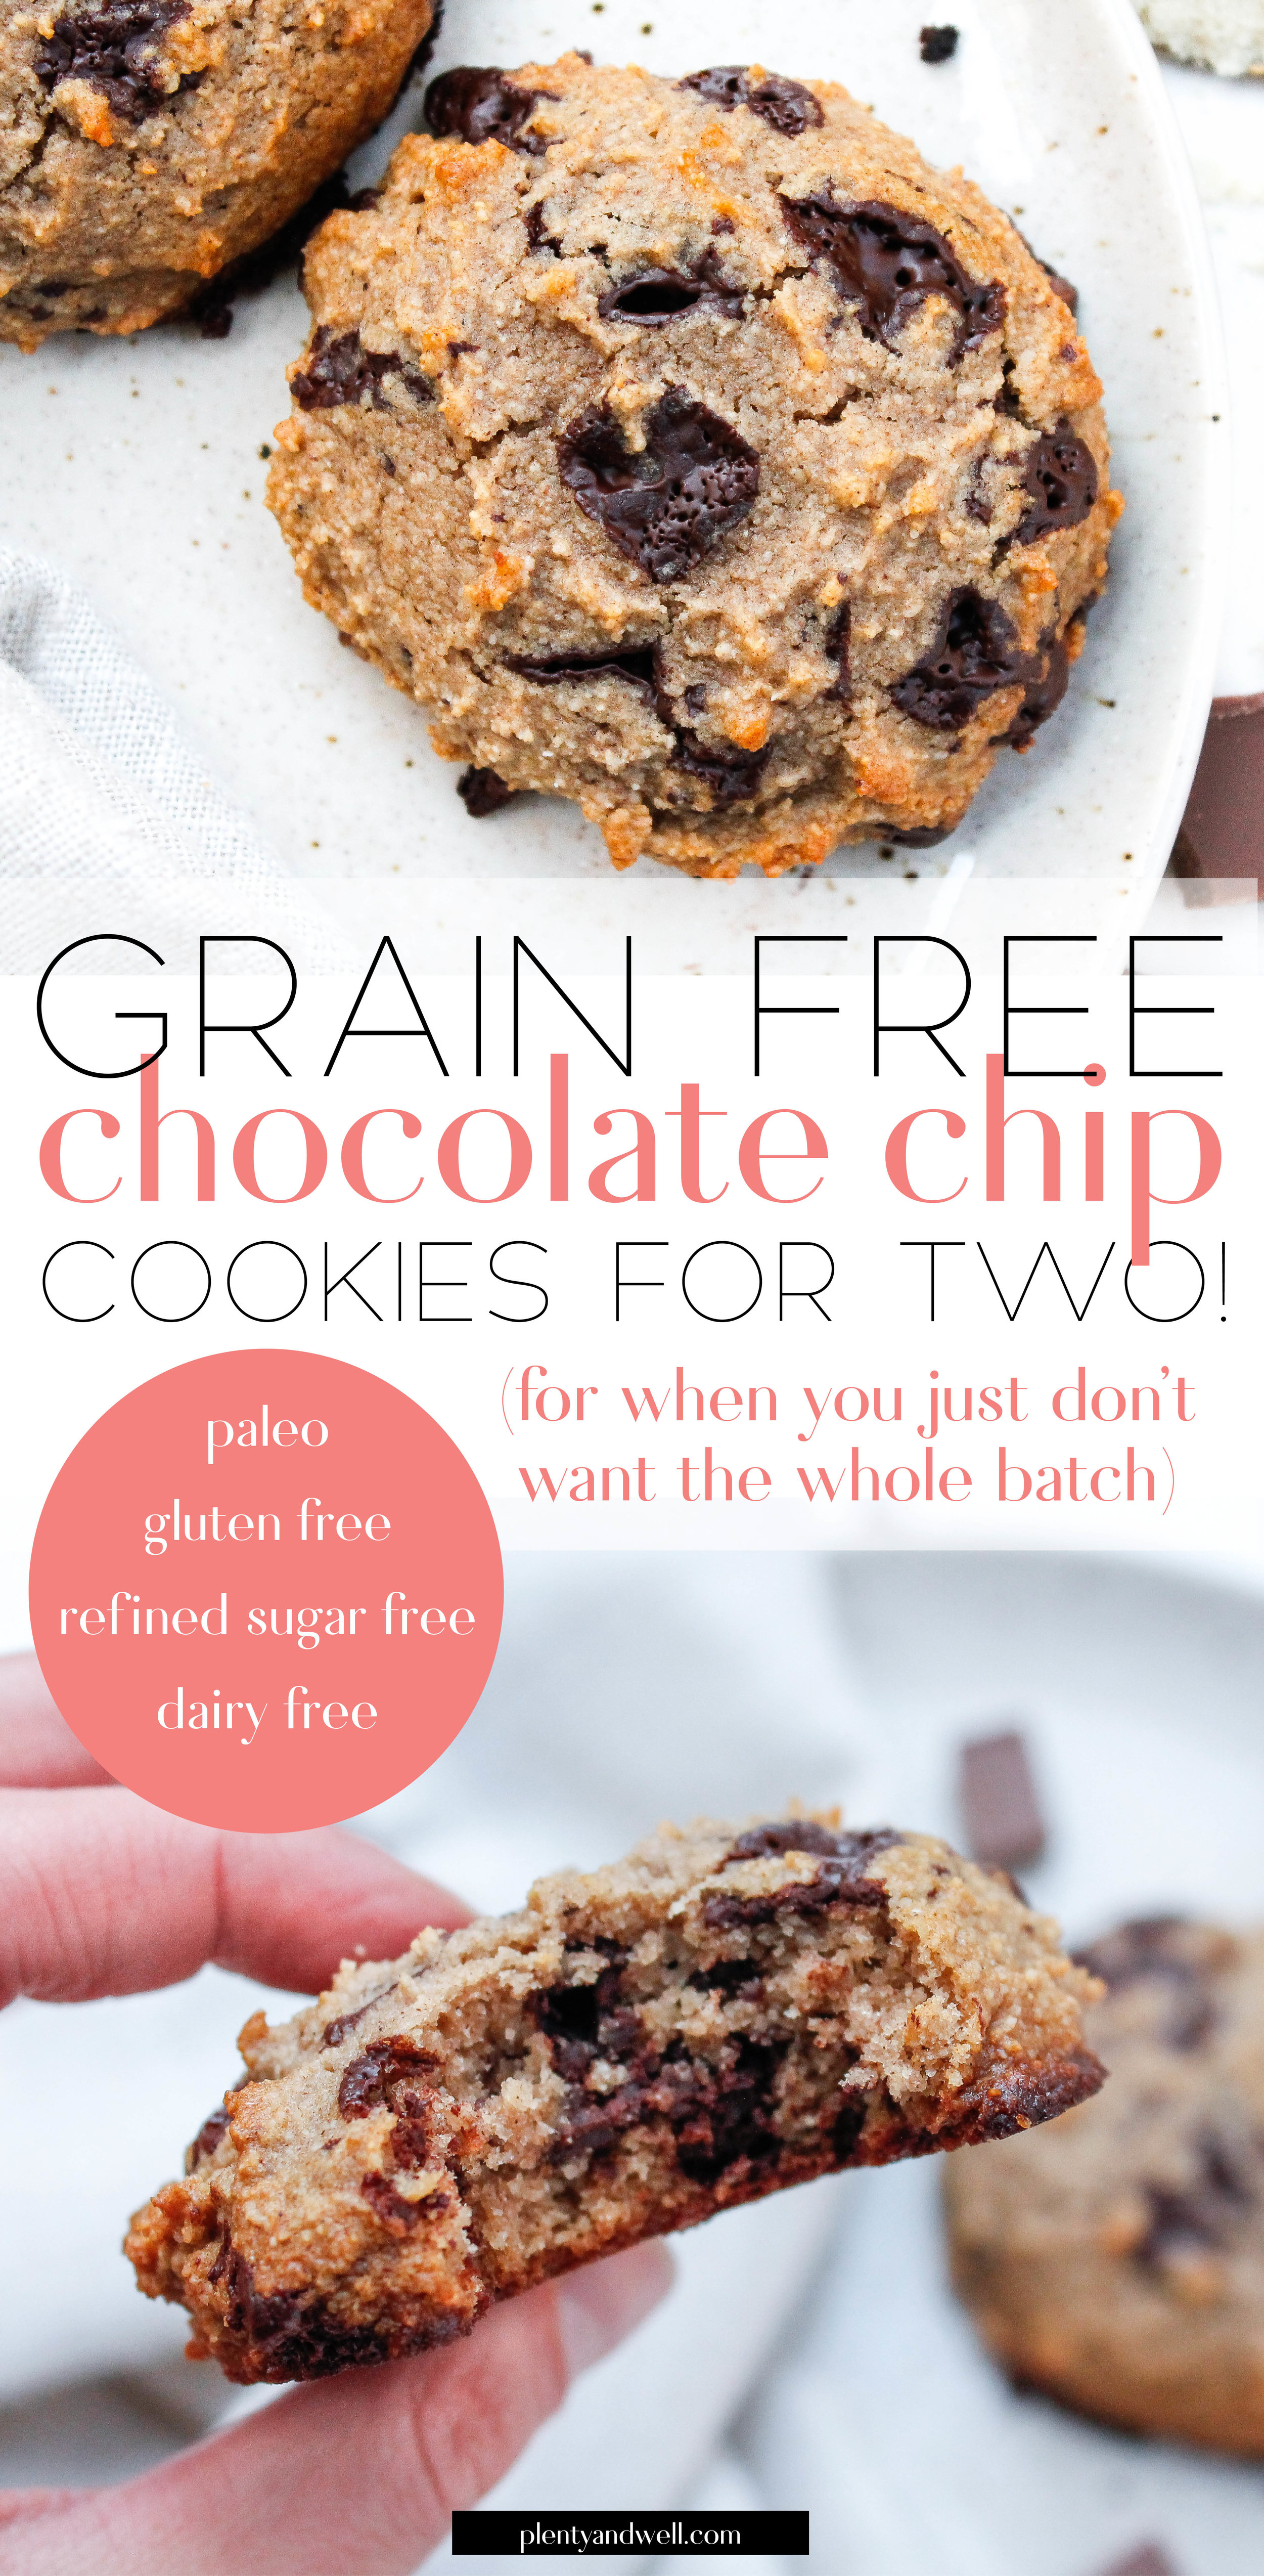 Paleo Chocolate Chip Tahini Cookies    Do you ever want a cookie but just don't want to make a full batch? SAME. This recipe is the perfect solution (because you can never truly just have ONE). These cookies are grain free, gluten free, dairy free, refined sugar free and can easily be made Specific Carbohydrate Diet friendly by using nuts and dried fruit instead of chocolate!    plentyandwell.com    #paleocookies #paleobaking #singleservecookies